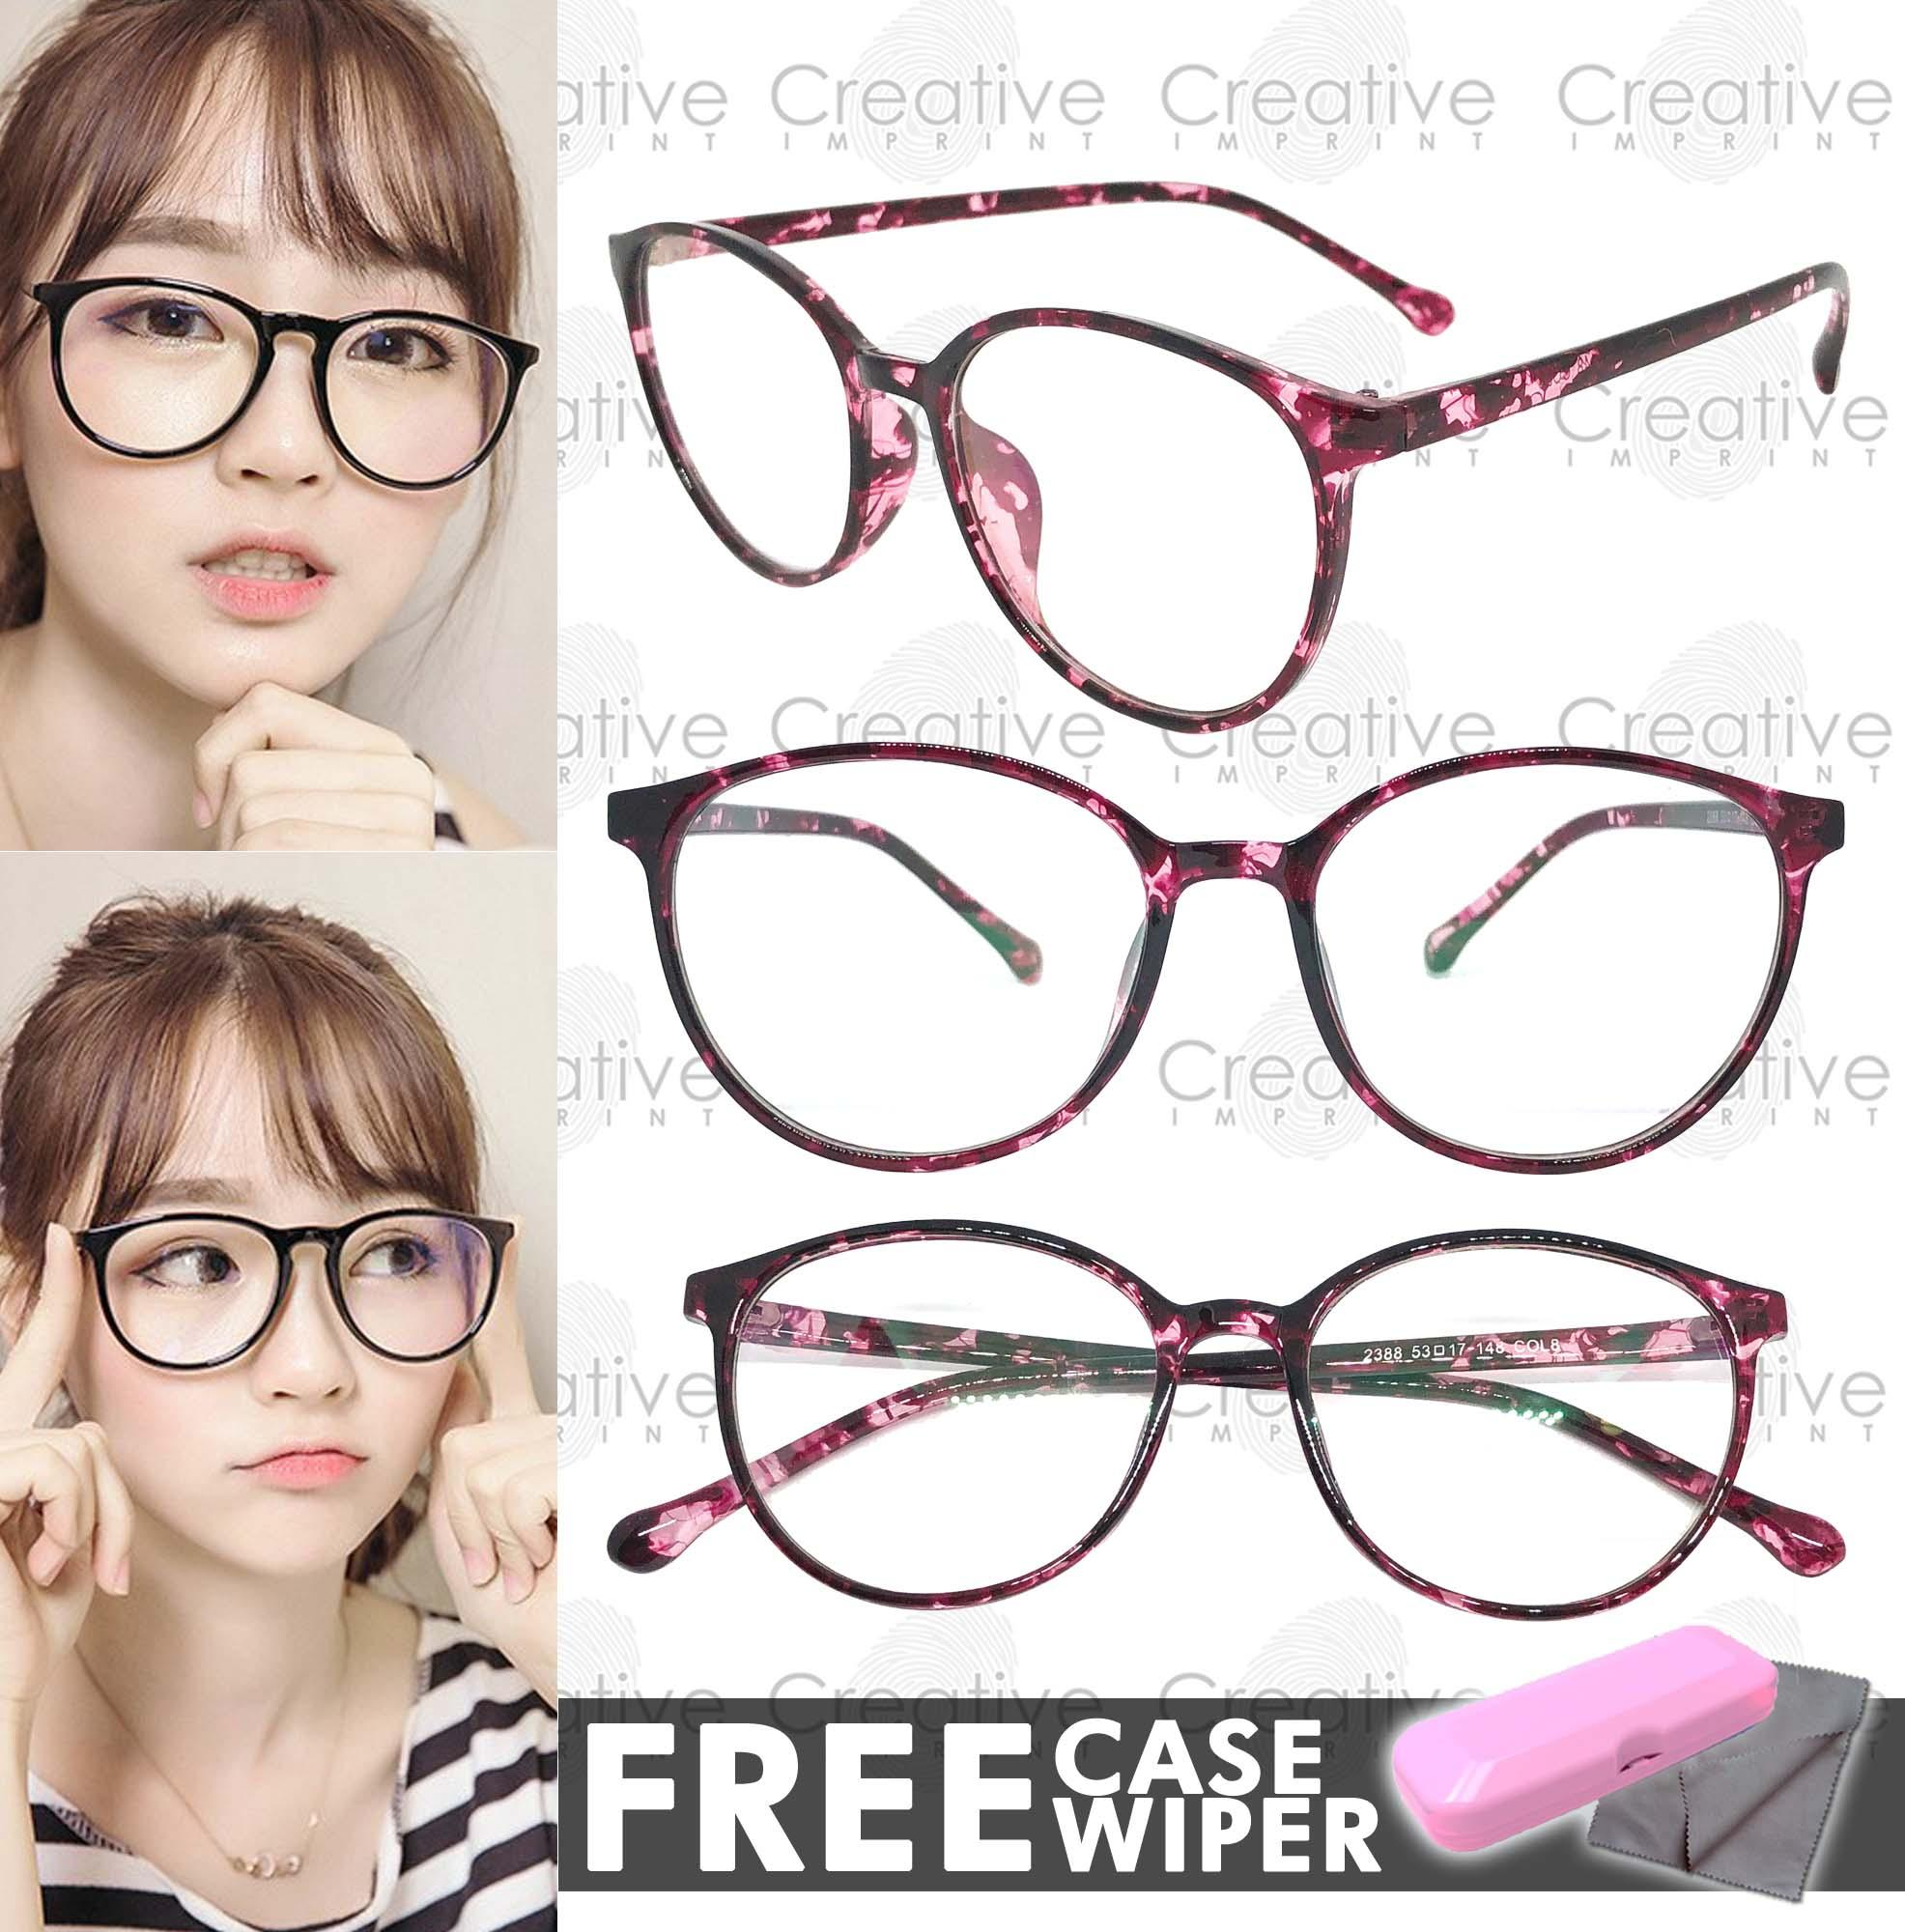 57acdc3d50d Creative Imprint Eyeglasses Anti-Radiation Lens ( 05 Animal Print Purple)  Anti-